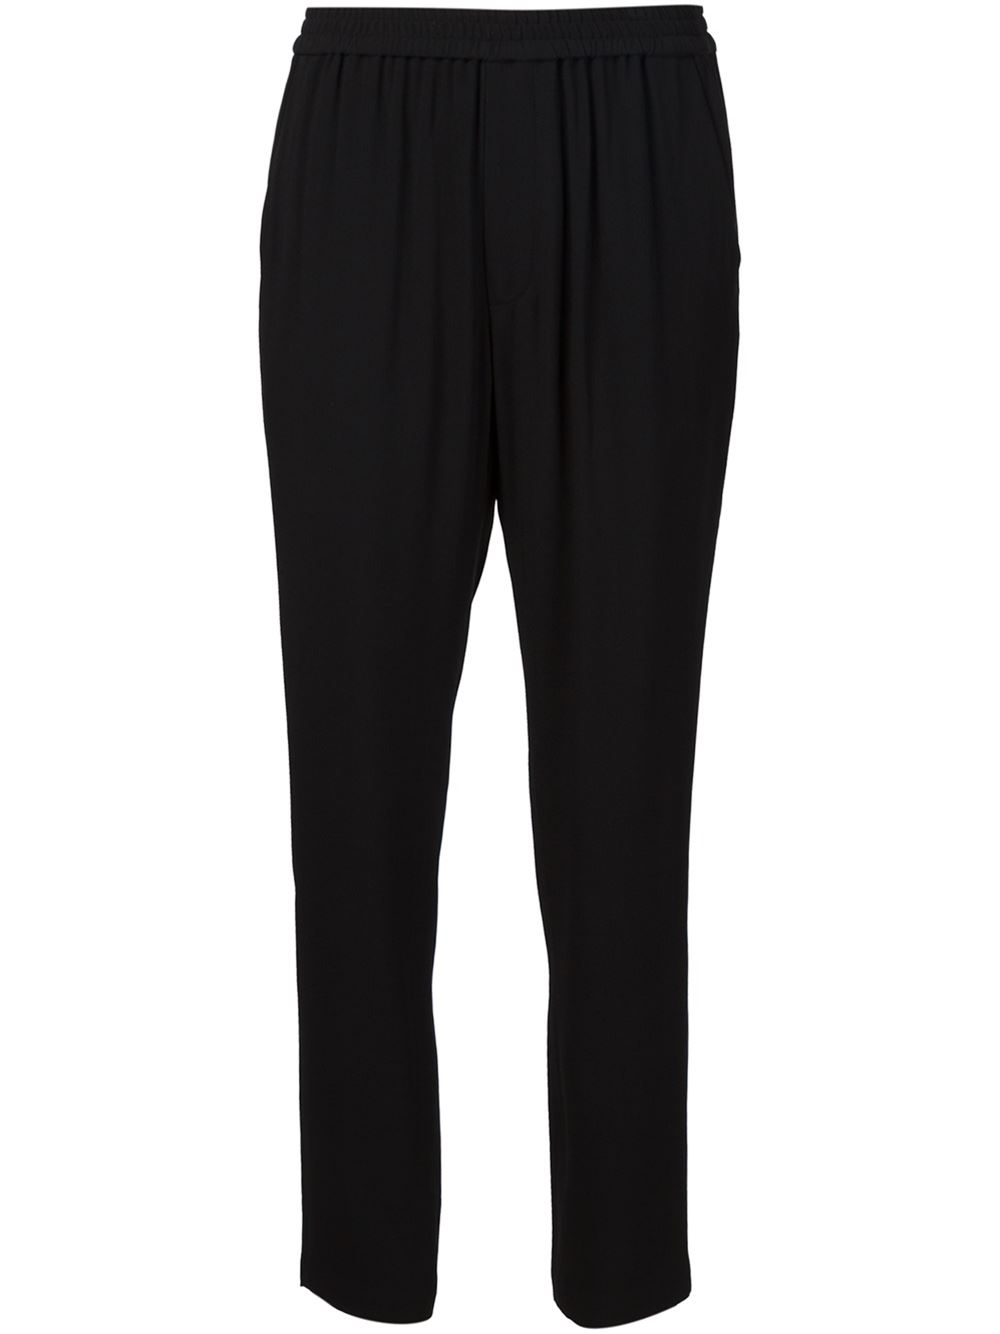 Find great deals on eBay for black elasticated waist trousers. Shop with confidence.